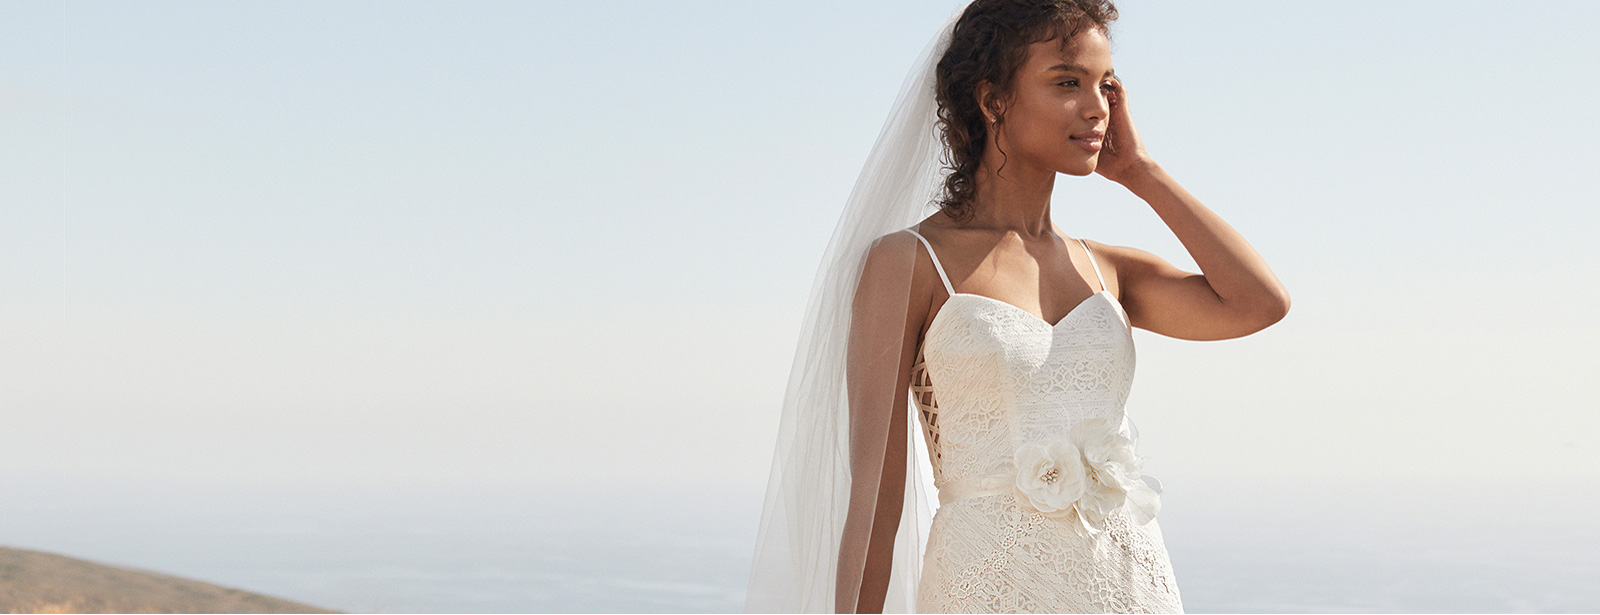 Bride on beach in Galina lace spaghetti strap gown with side cut-outs and floral sash